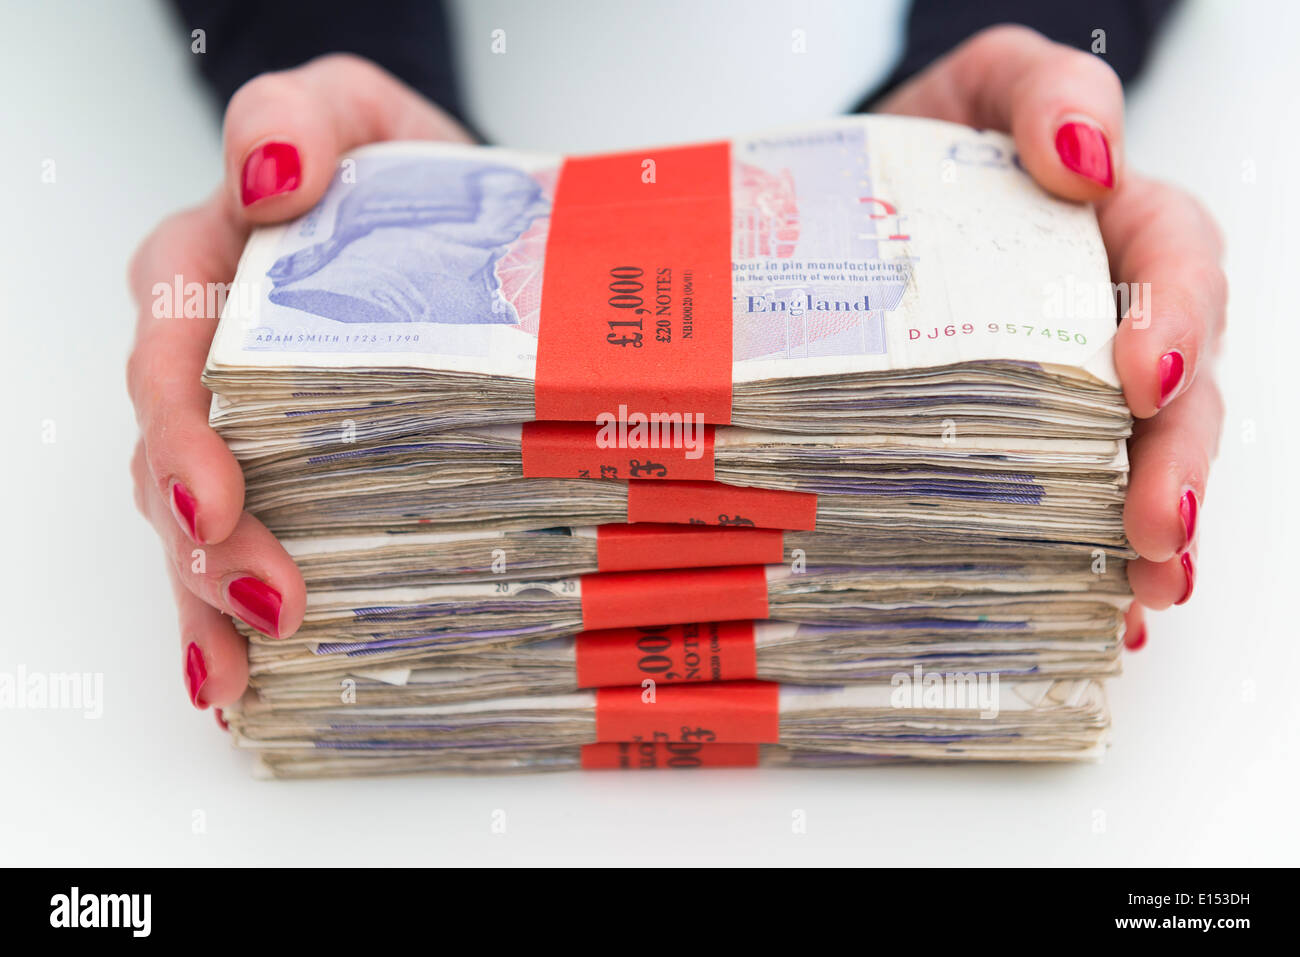 A woman holding £1000 Bundles of British pounds sterling. - Stock Image